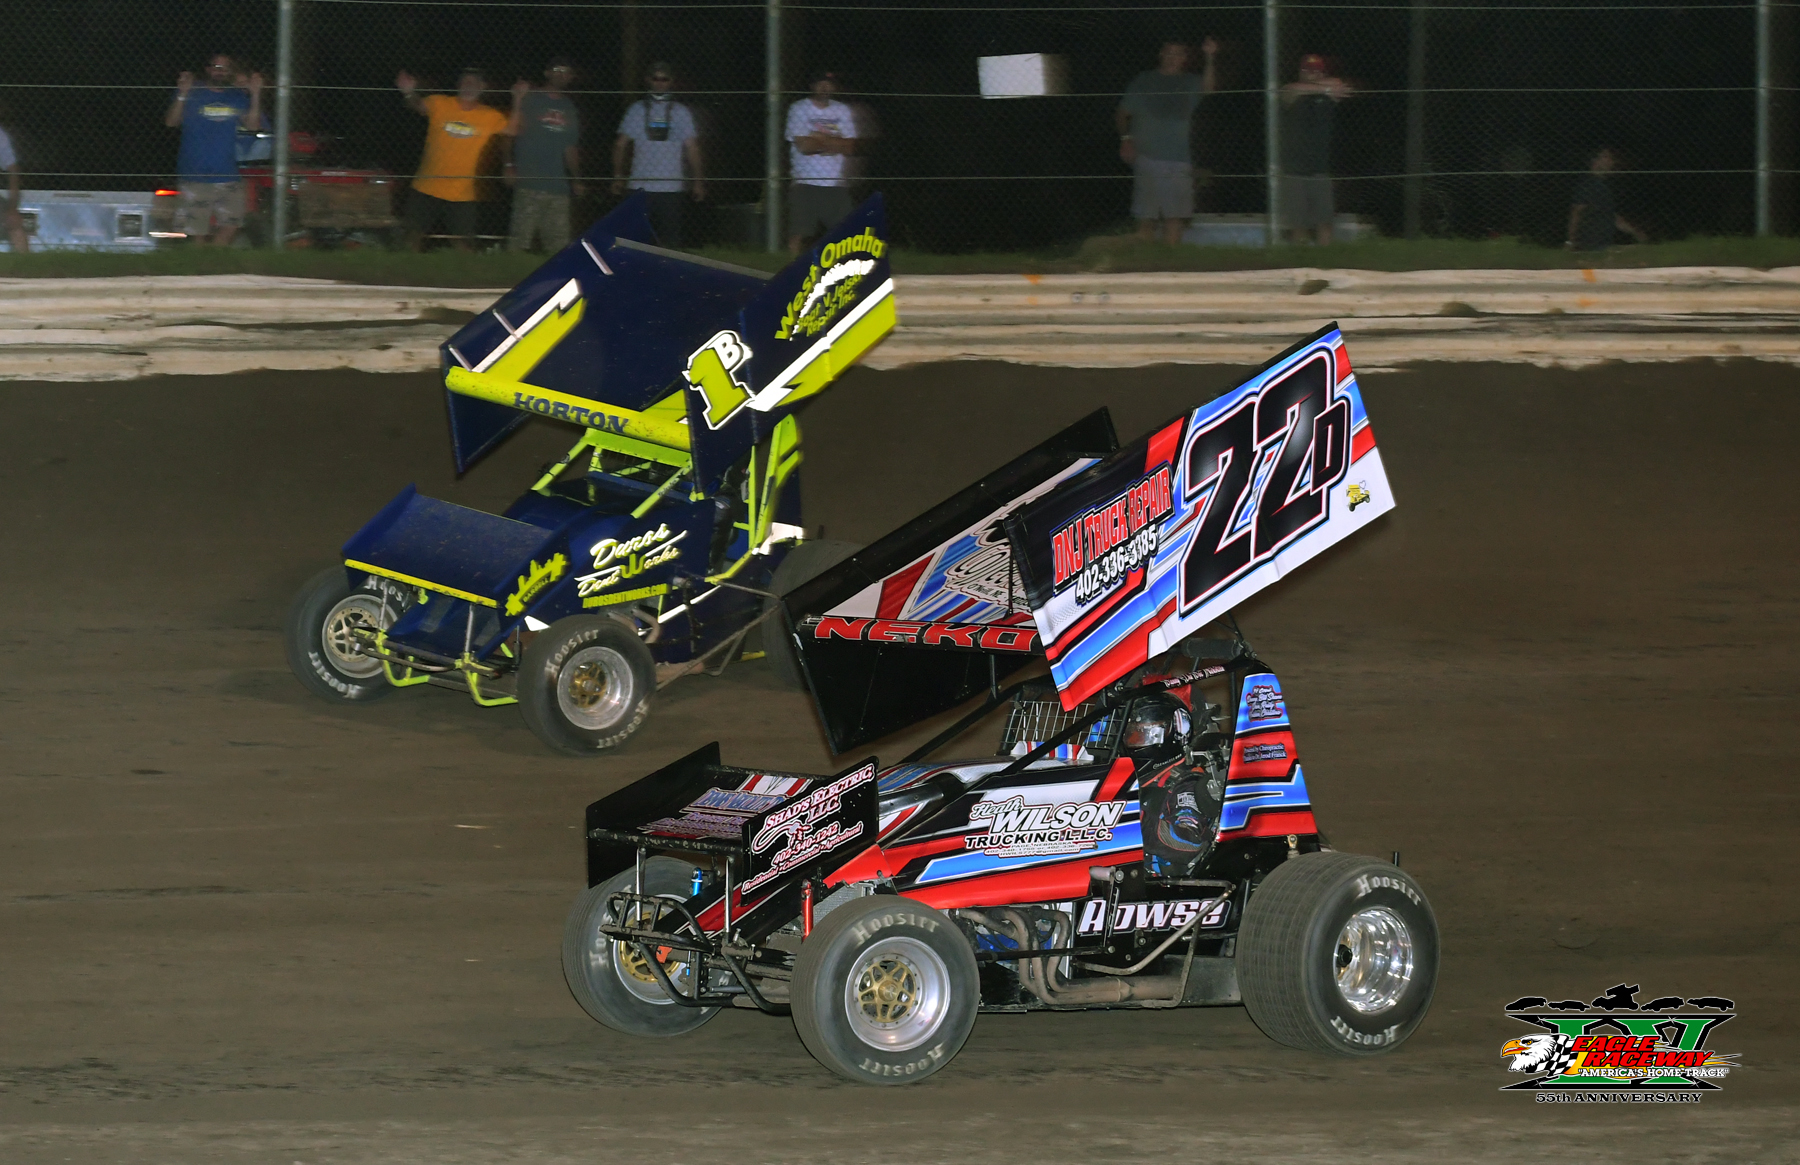 sprint car drivers from broken arrow oklahoma